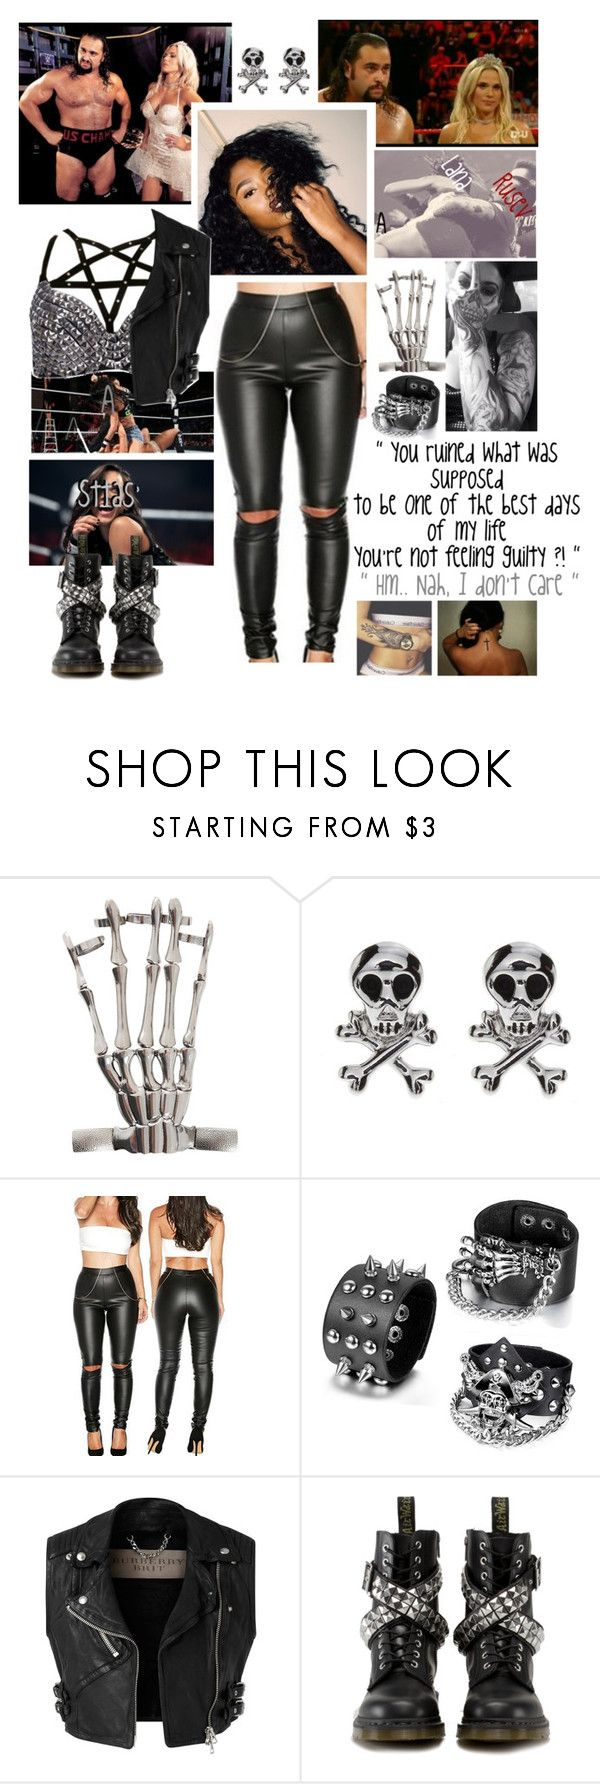 """""""🌪 Anasttasia 🌪 Raw 🔴 Lana calls out Anasttasia"""" by queenofwrestling ❤ liked on Polyvore featuring Burberry, Dr. Martens, Lana, WWE, raw, wrestling and rusev"""